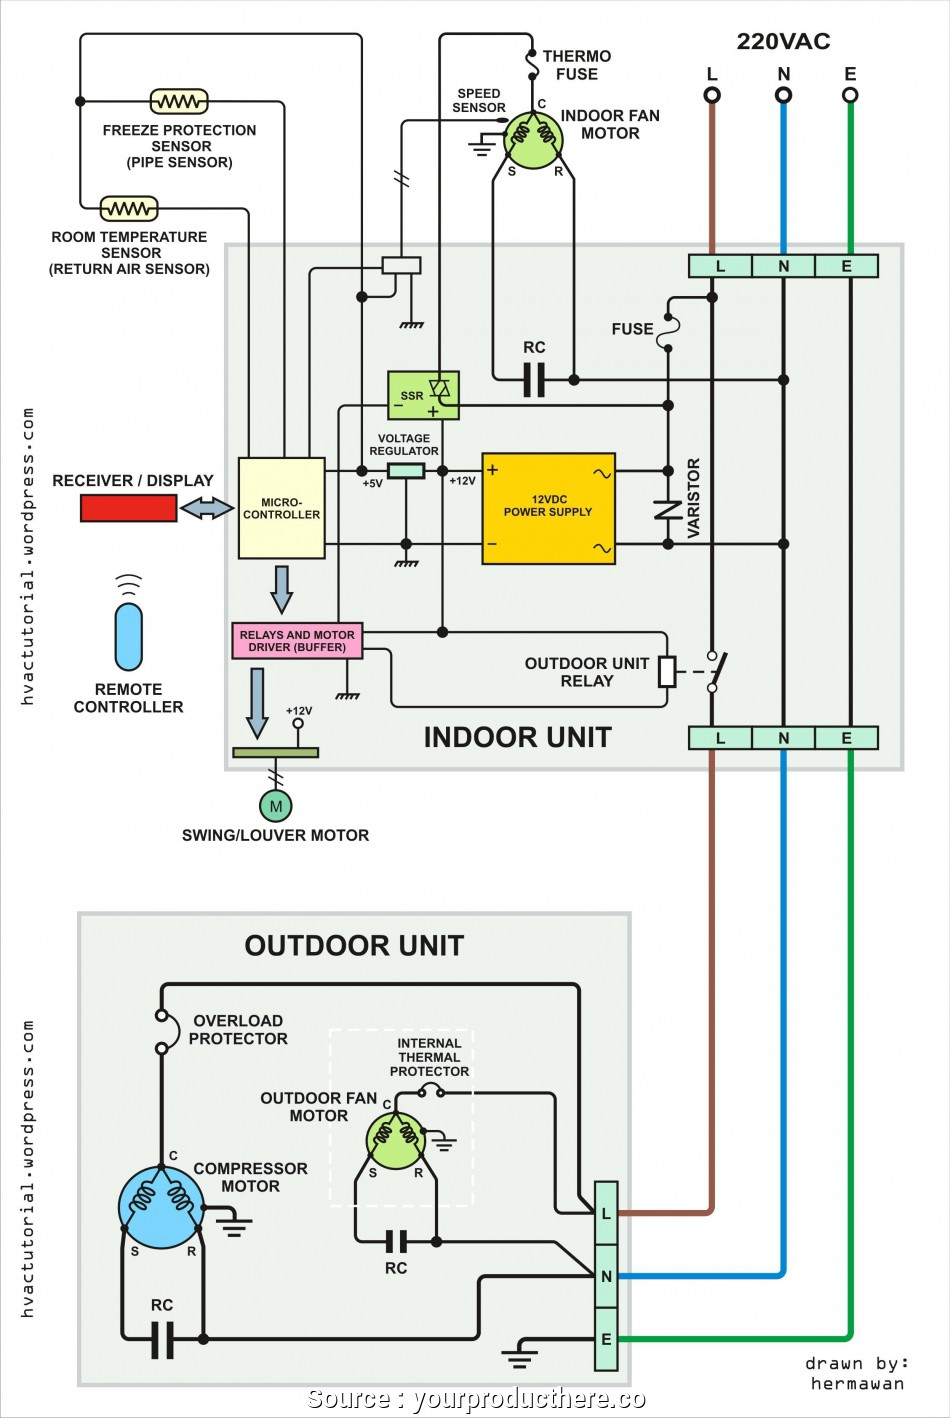 Honeywell Thermostat Wiring Diagram 2300B | Wiring Diagram - Honeywell Zone Valve Wiring Diagram